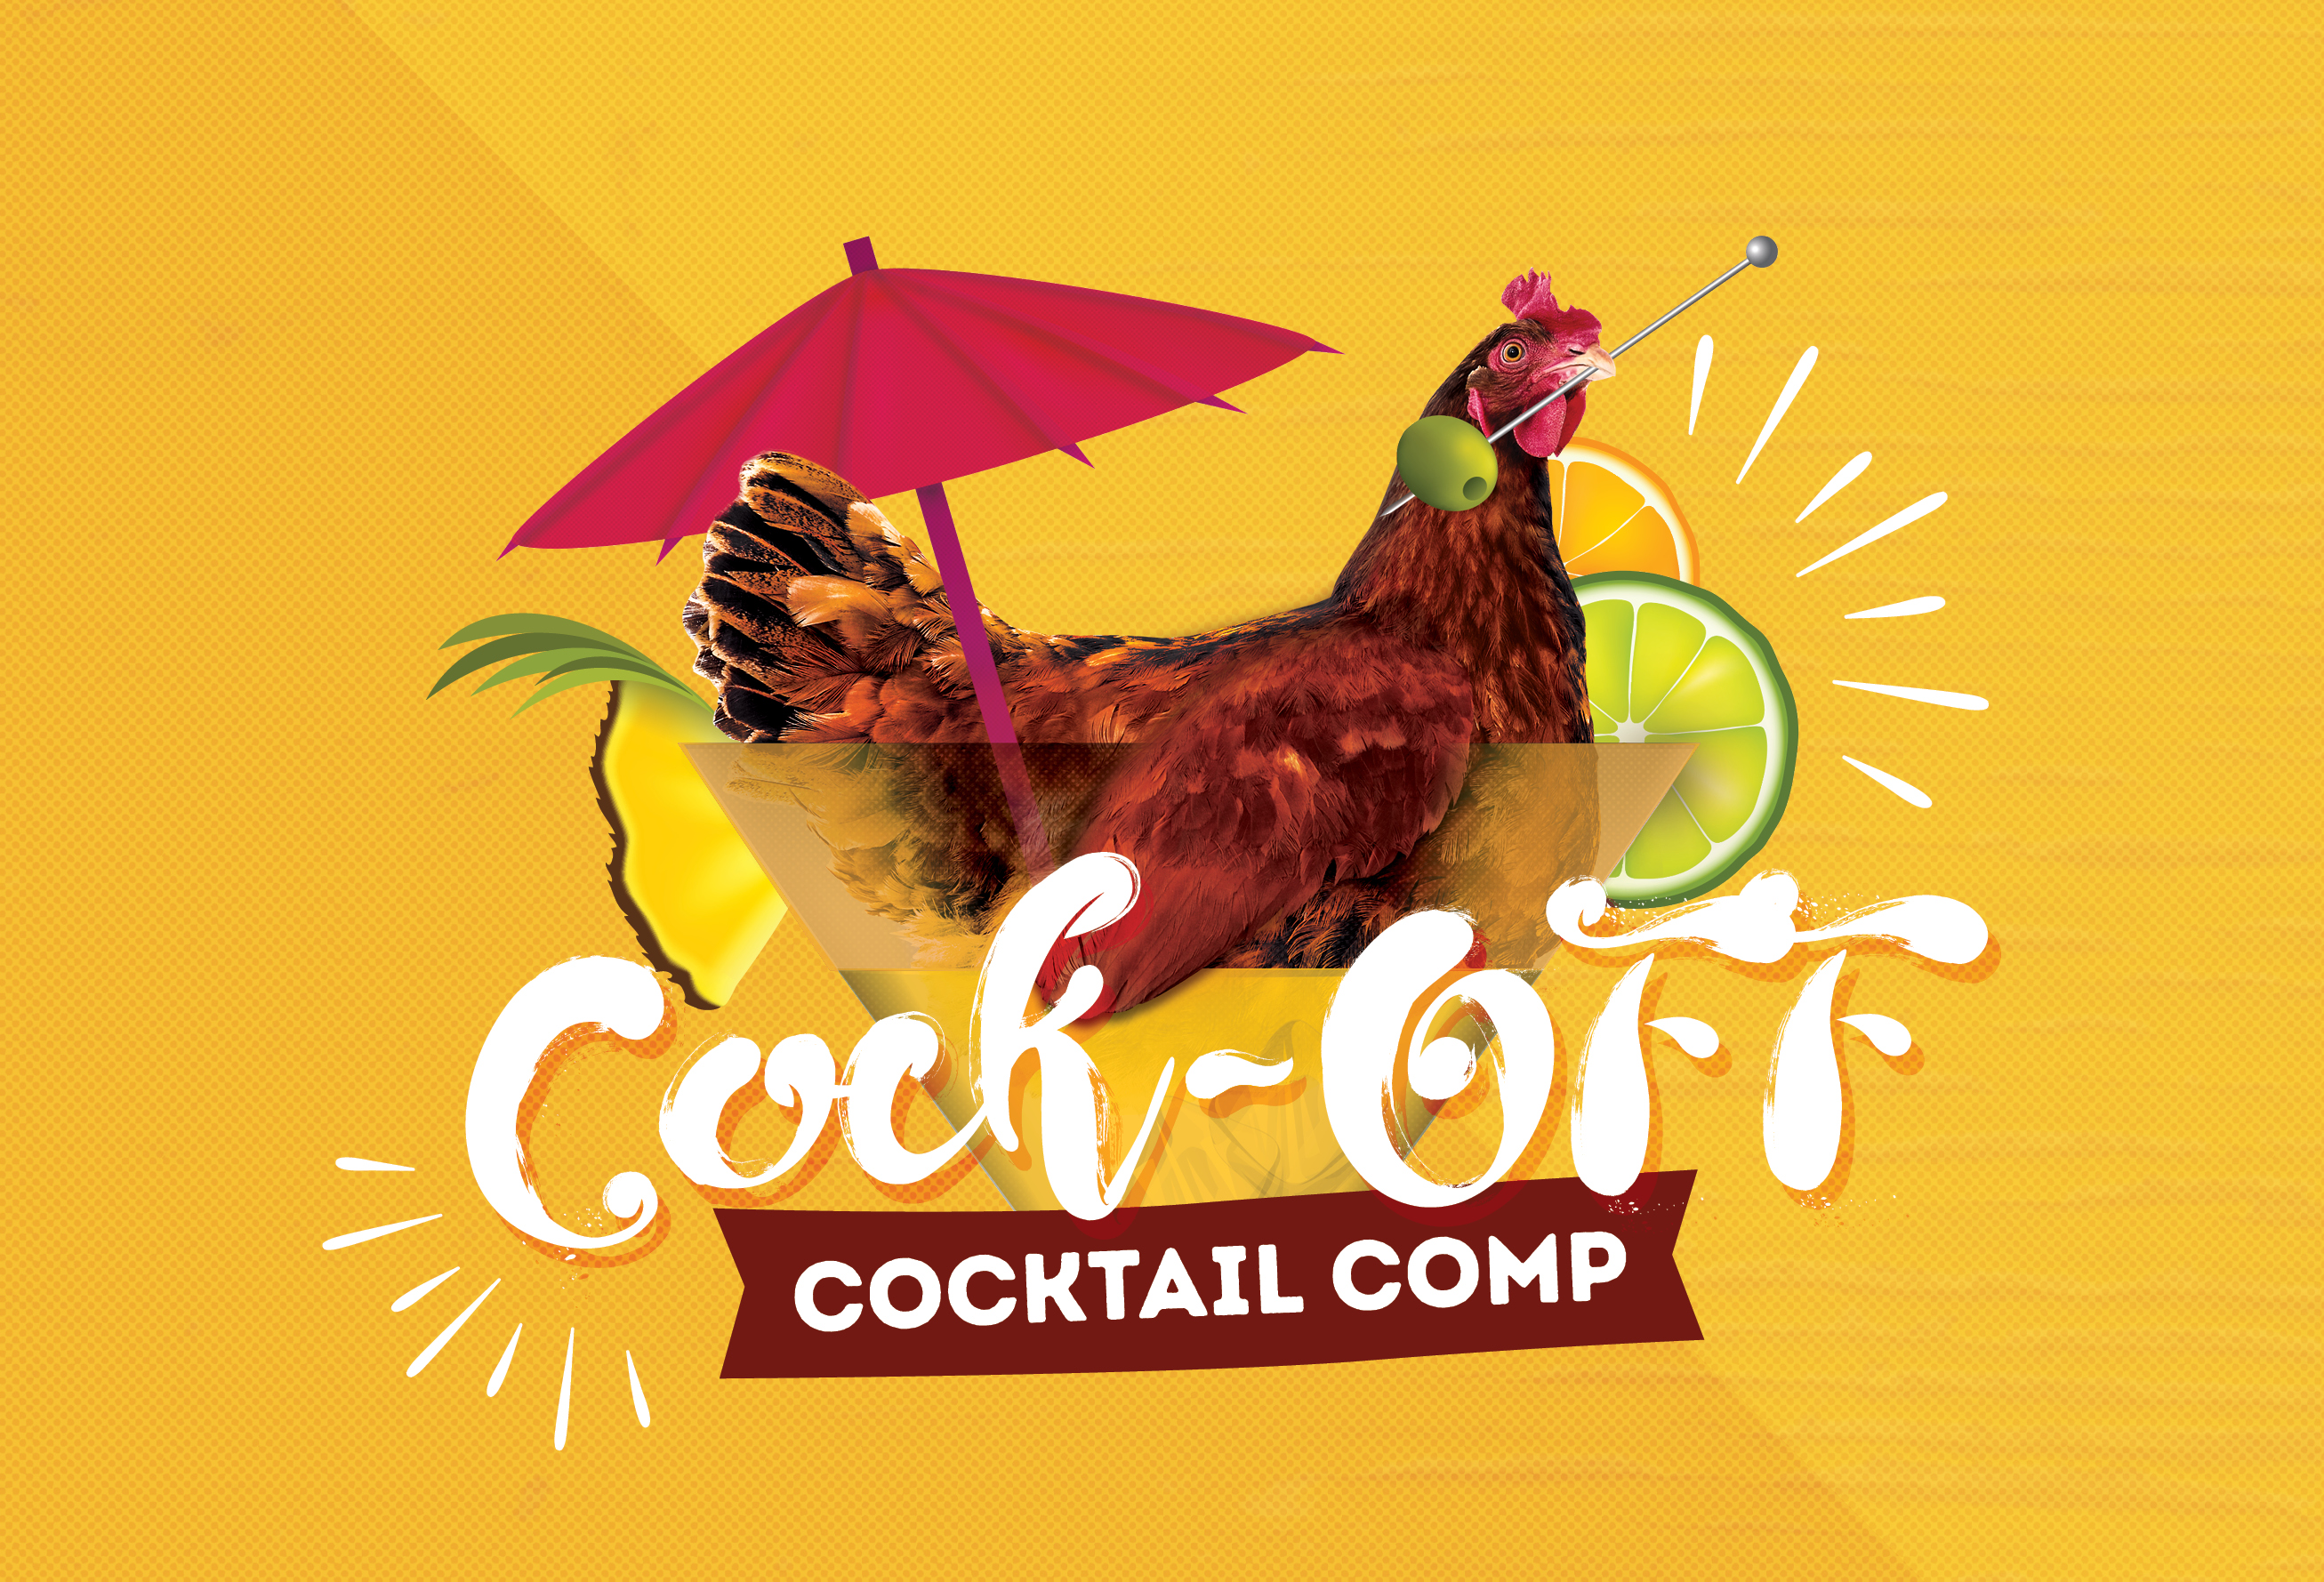 Cock-Off Cocktail Comp <br> WEEK 3: Connor